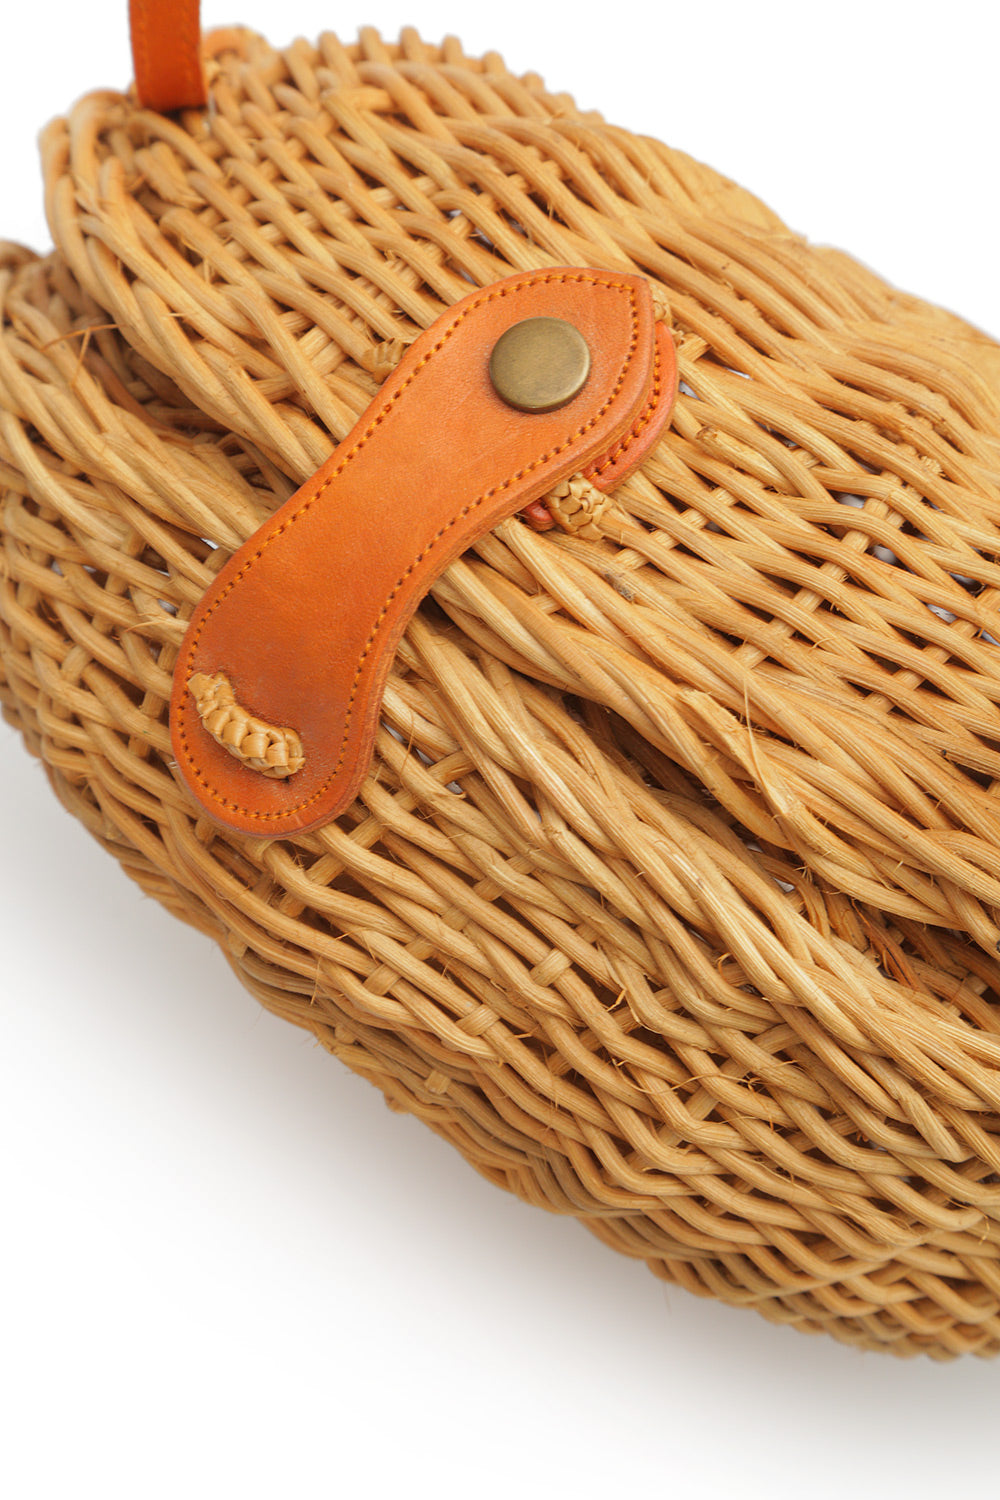 Wicker shoulder bag